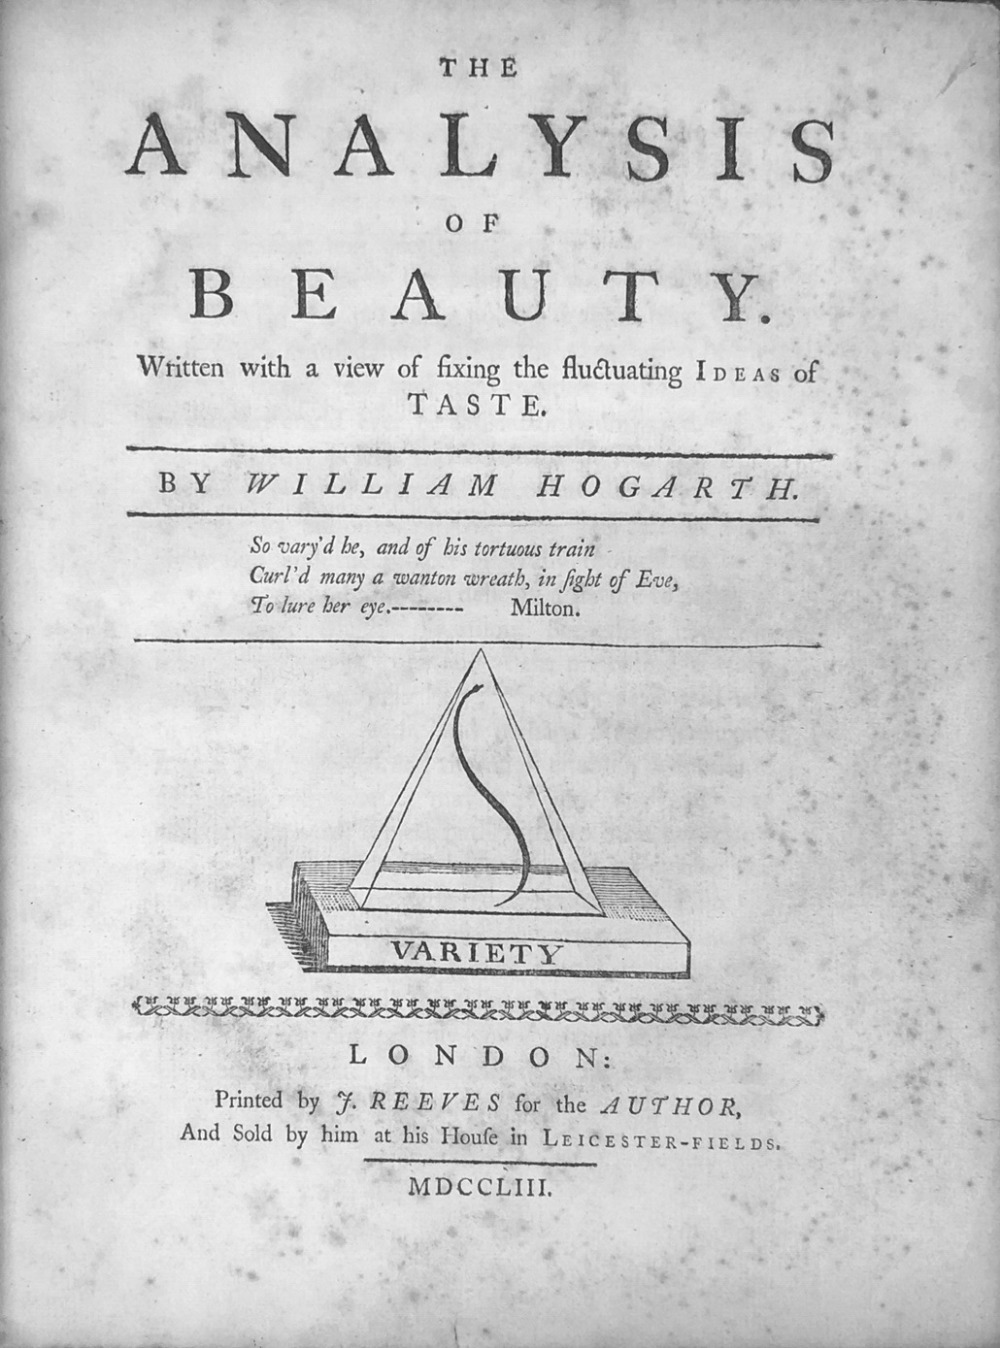 Lot 58 - Hogarth (William) The Analysis of Beauty, lg. 4to L. (J. Reeves for the Author) 1753. First Edn.